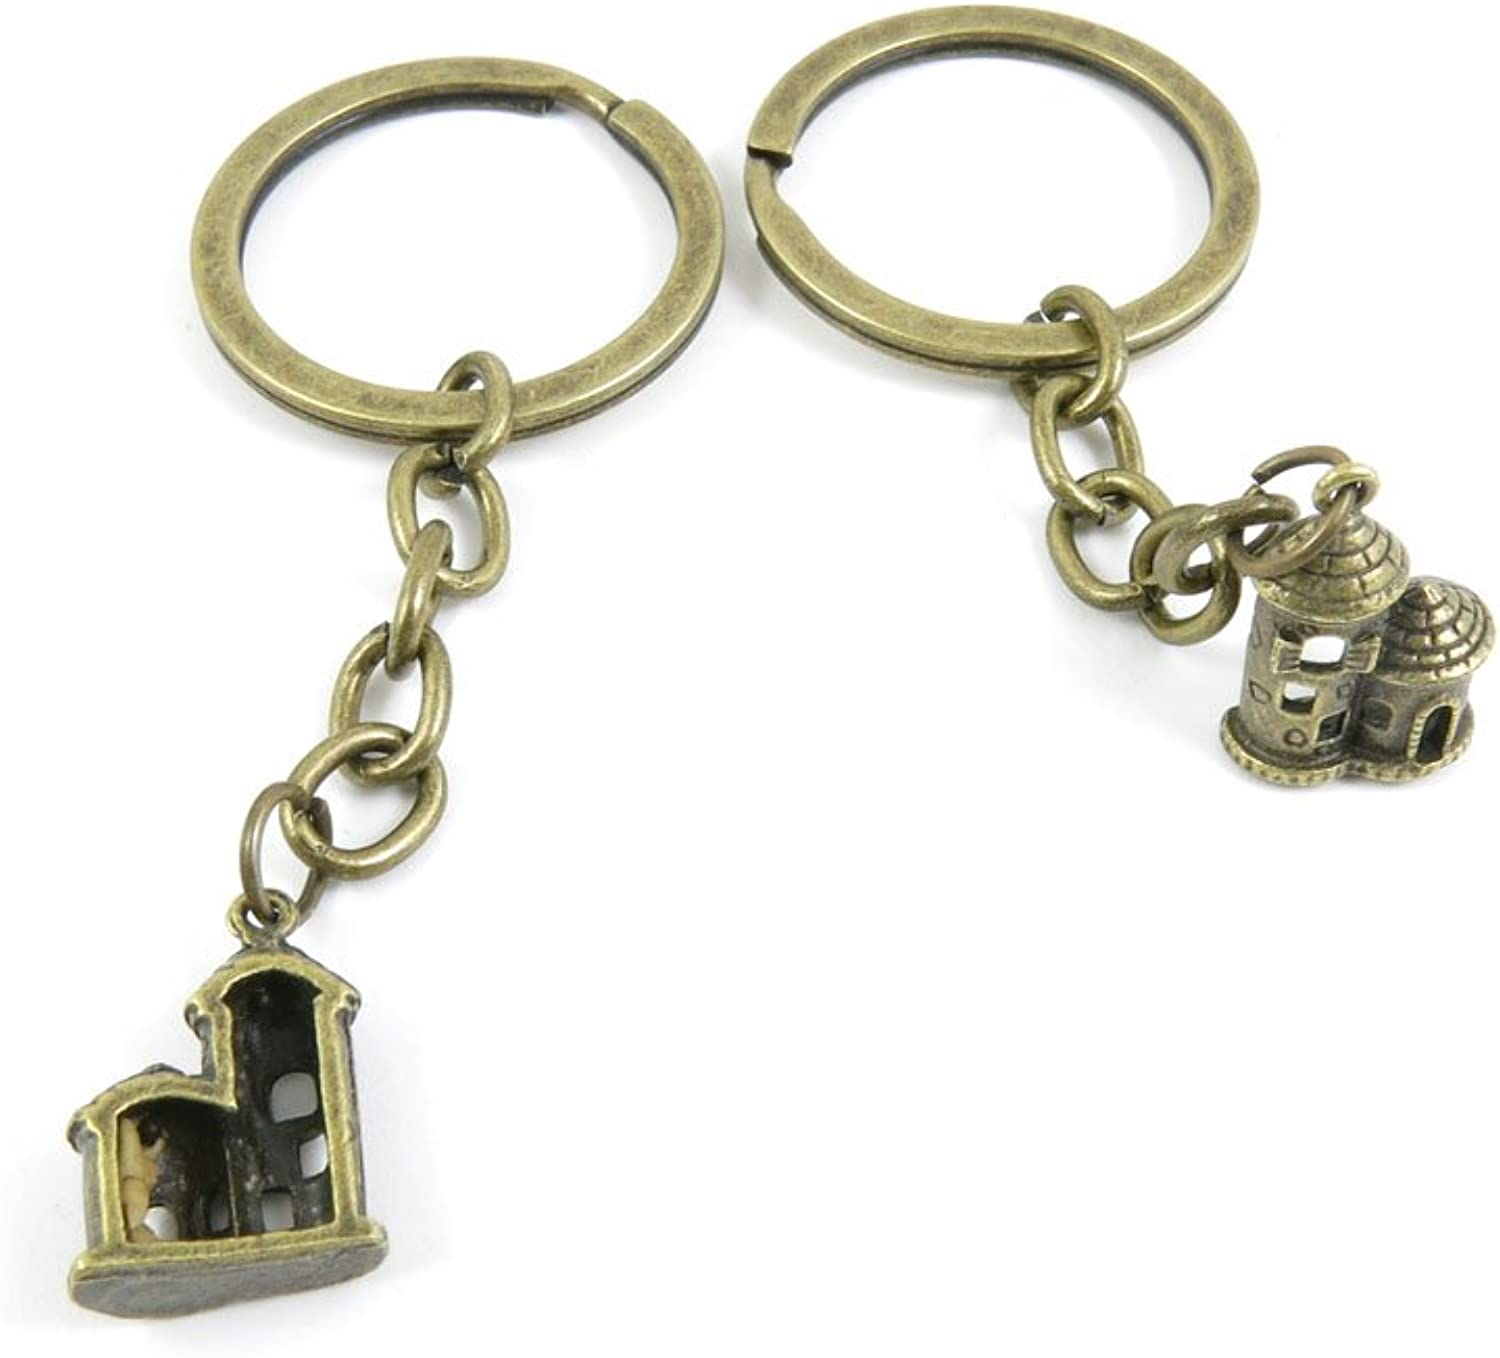 100 PCS Keyrings Keychains Key Ring Chains Tags Jewelry Findings Clasps Buckles Supplies Z0OQ7 Castle